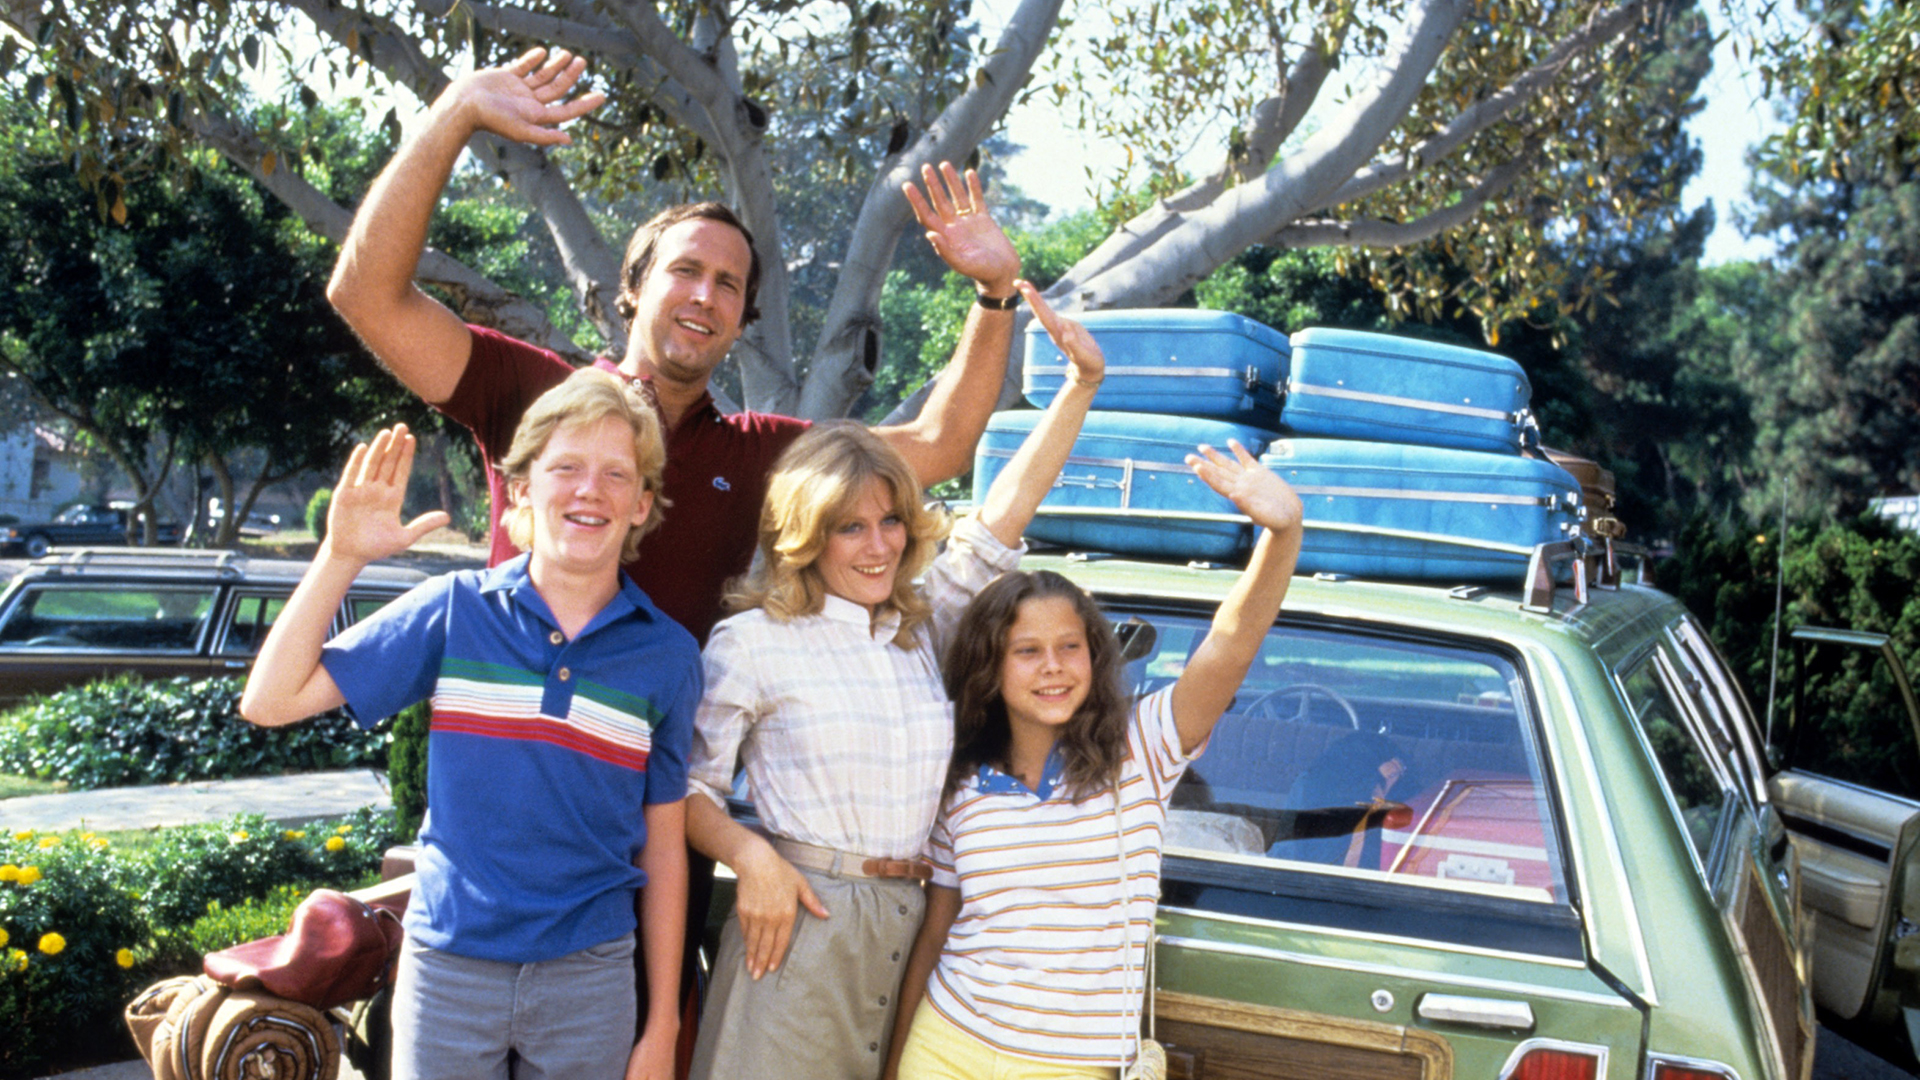 vacation-movie-chevy-chase-today-tease-150528_055383e6354bcba18dd996a54c3f58da